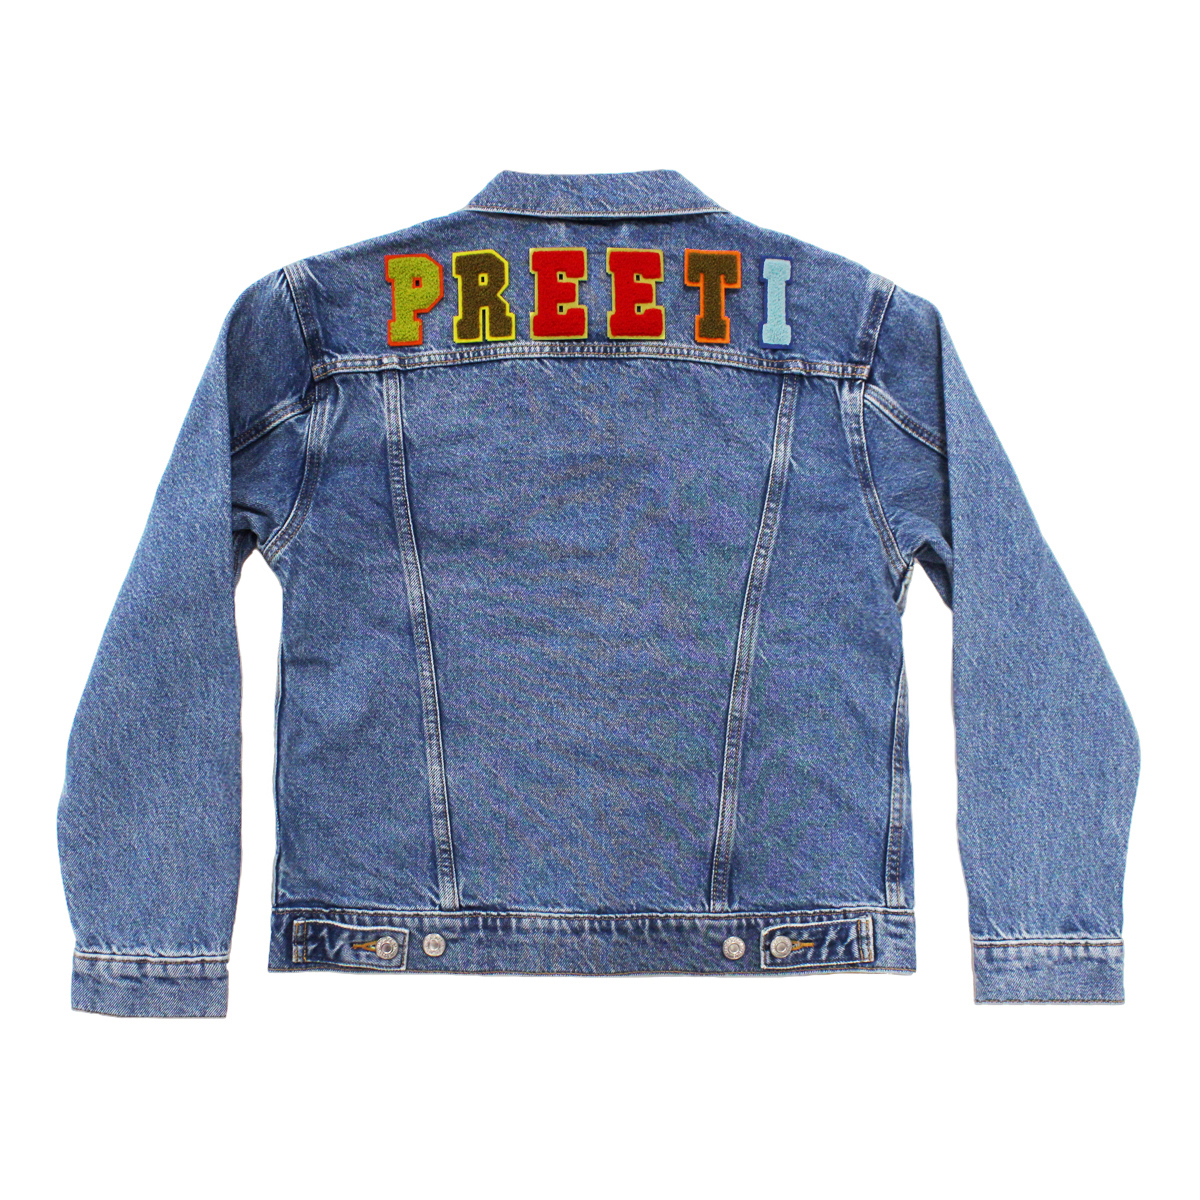 Levi's Denim Jacket with Custom Patch Name in Earth Tone Alphabet